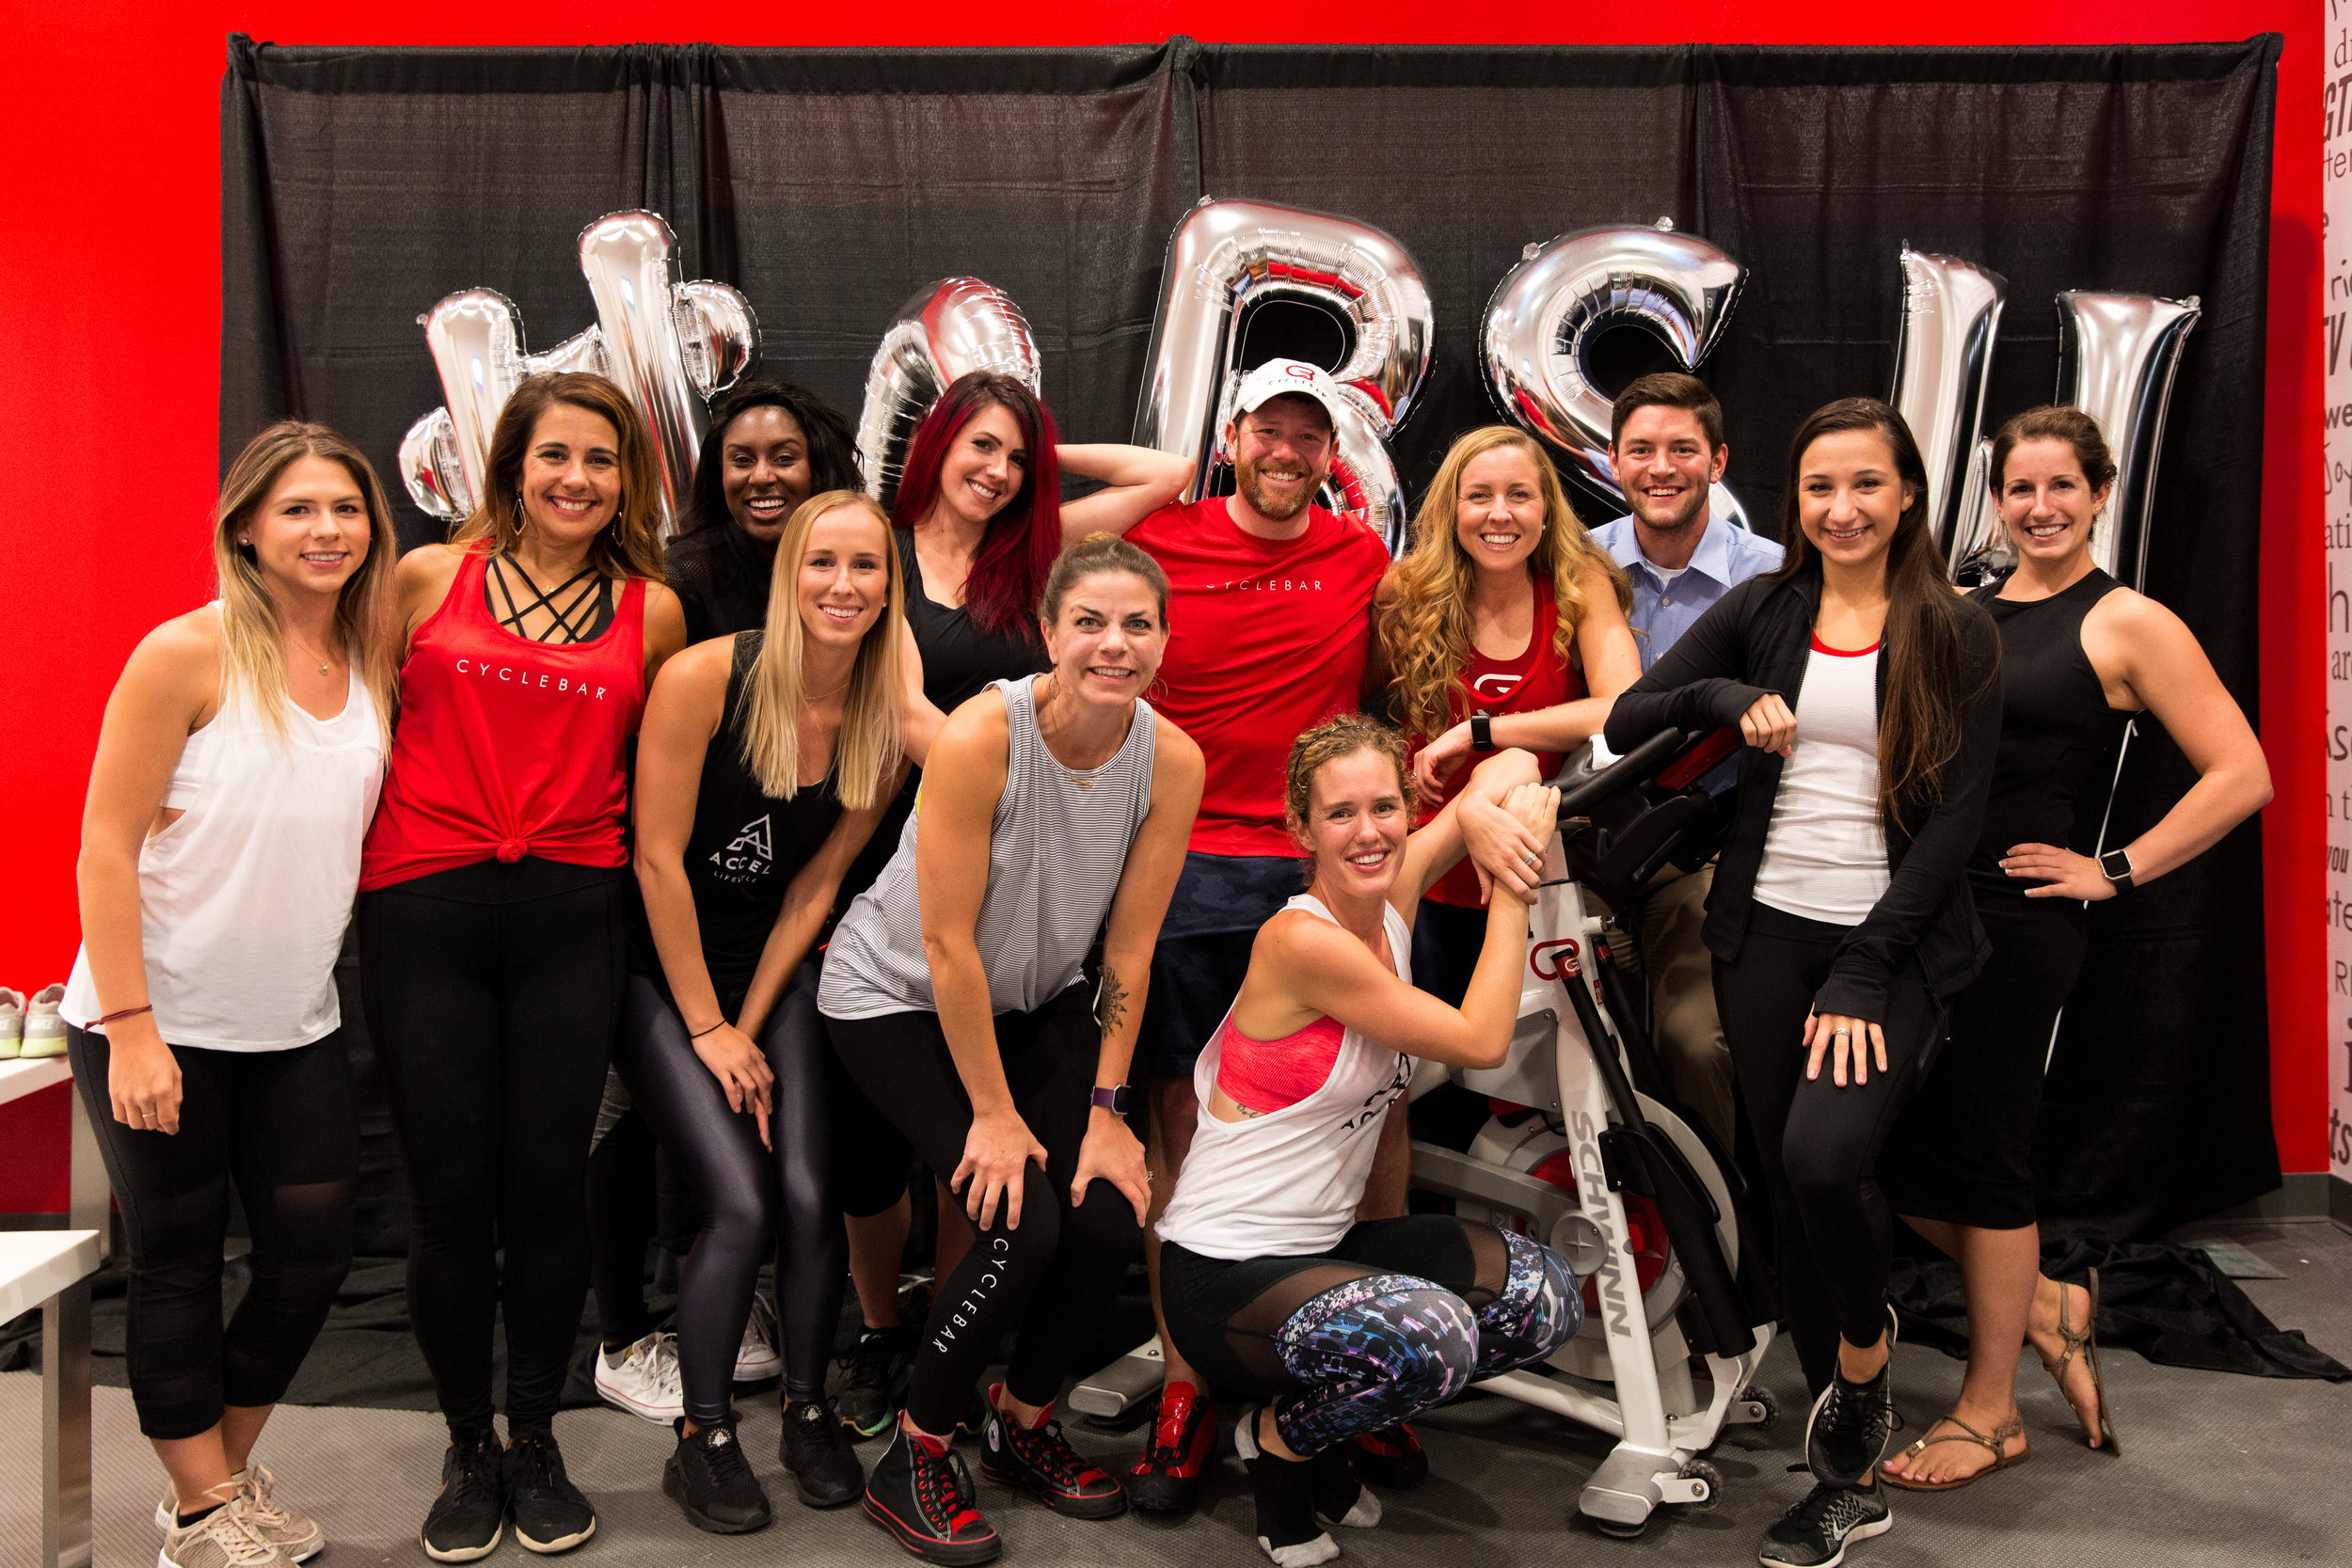 Kirby-Gladstein-CycleBar-Sawyer-Heights-Influencer-Night-2017-2332.jpg